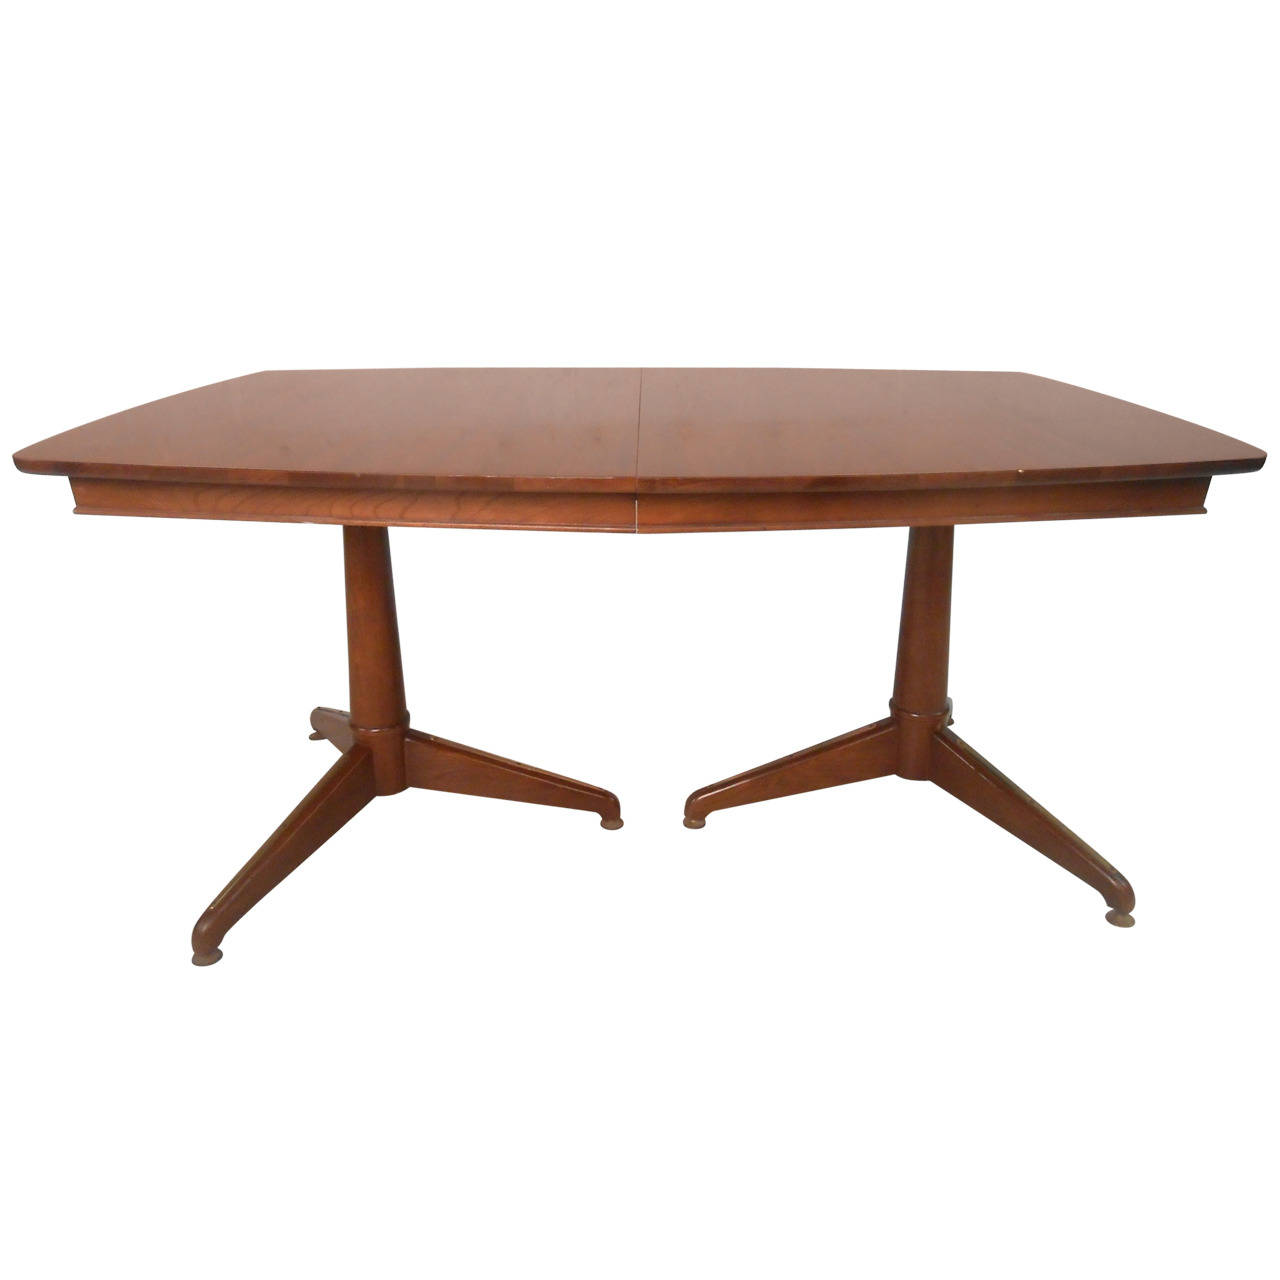 Mid century modern dining room table Photo - 1